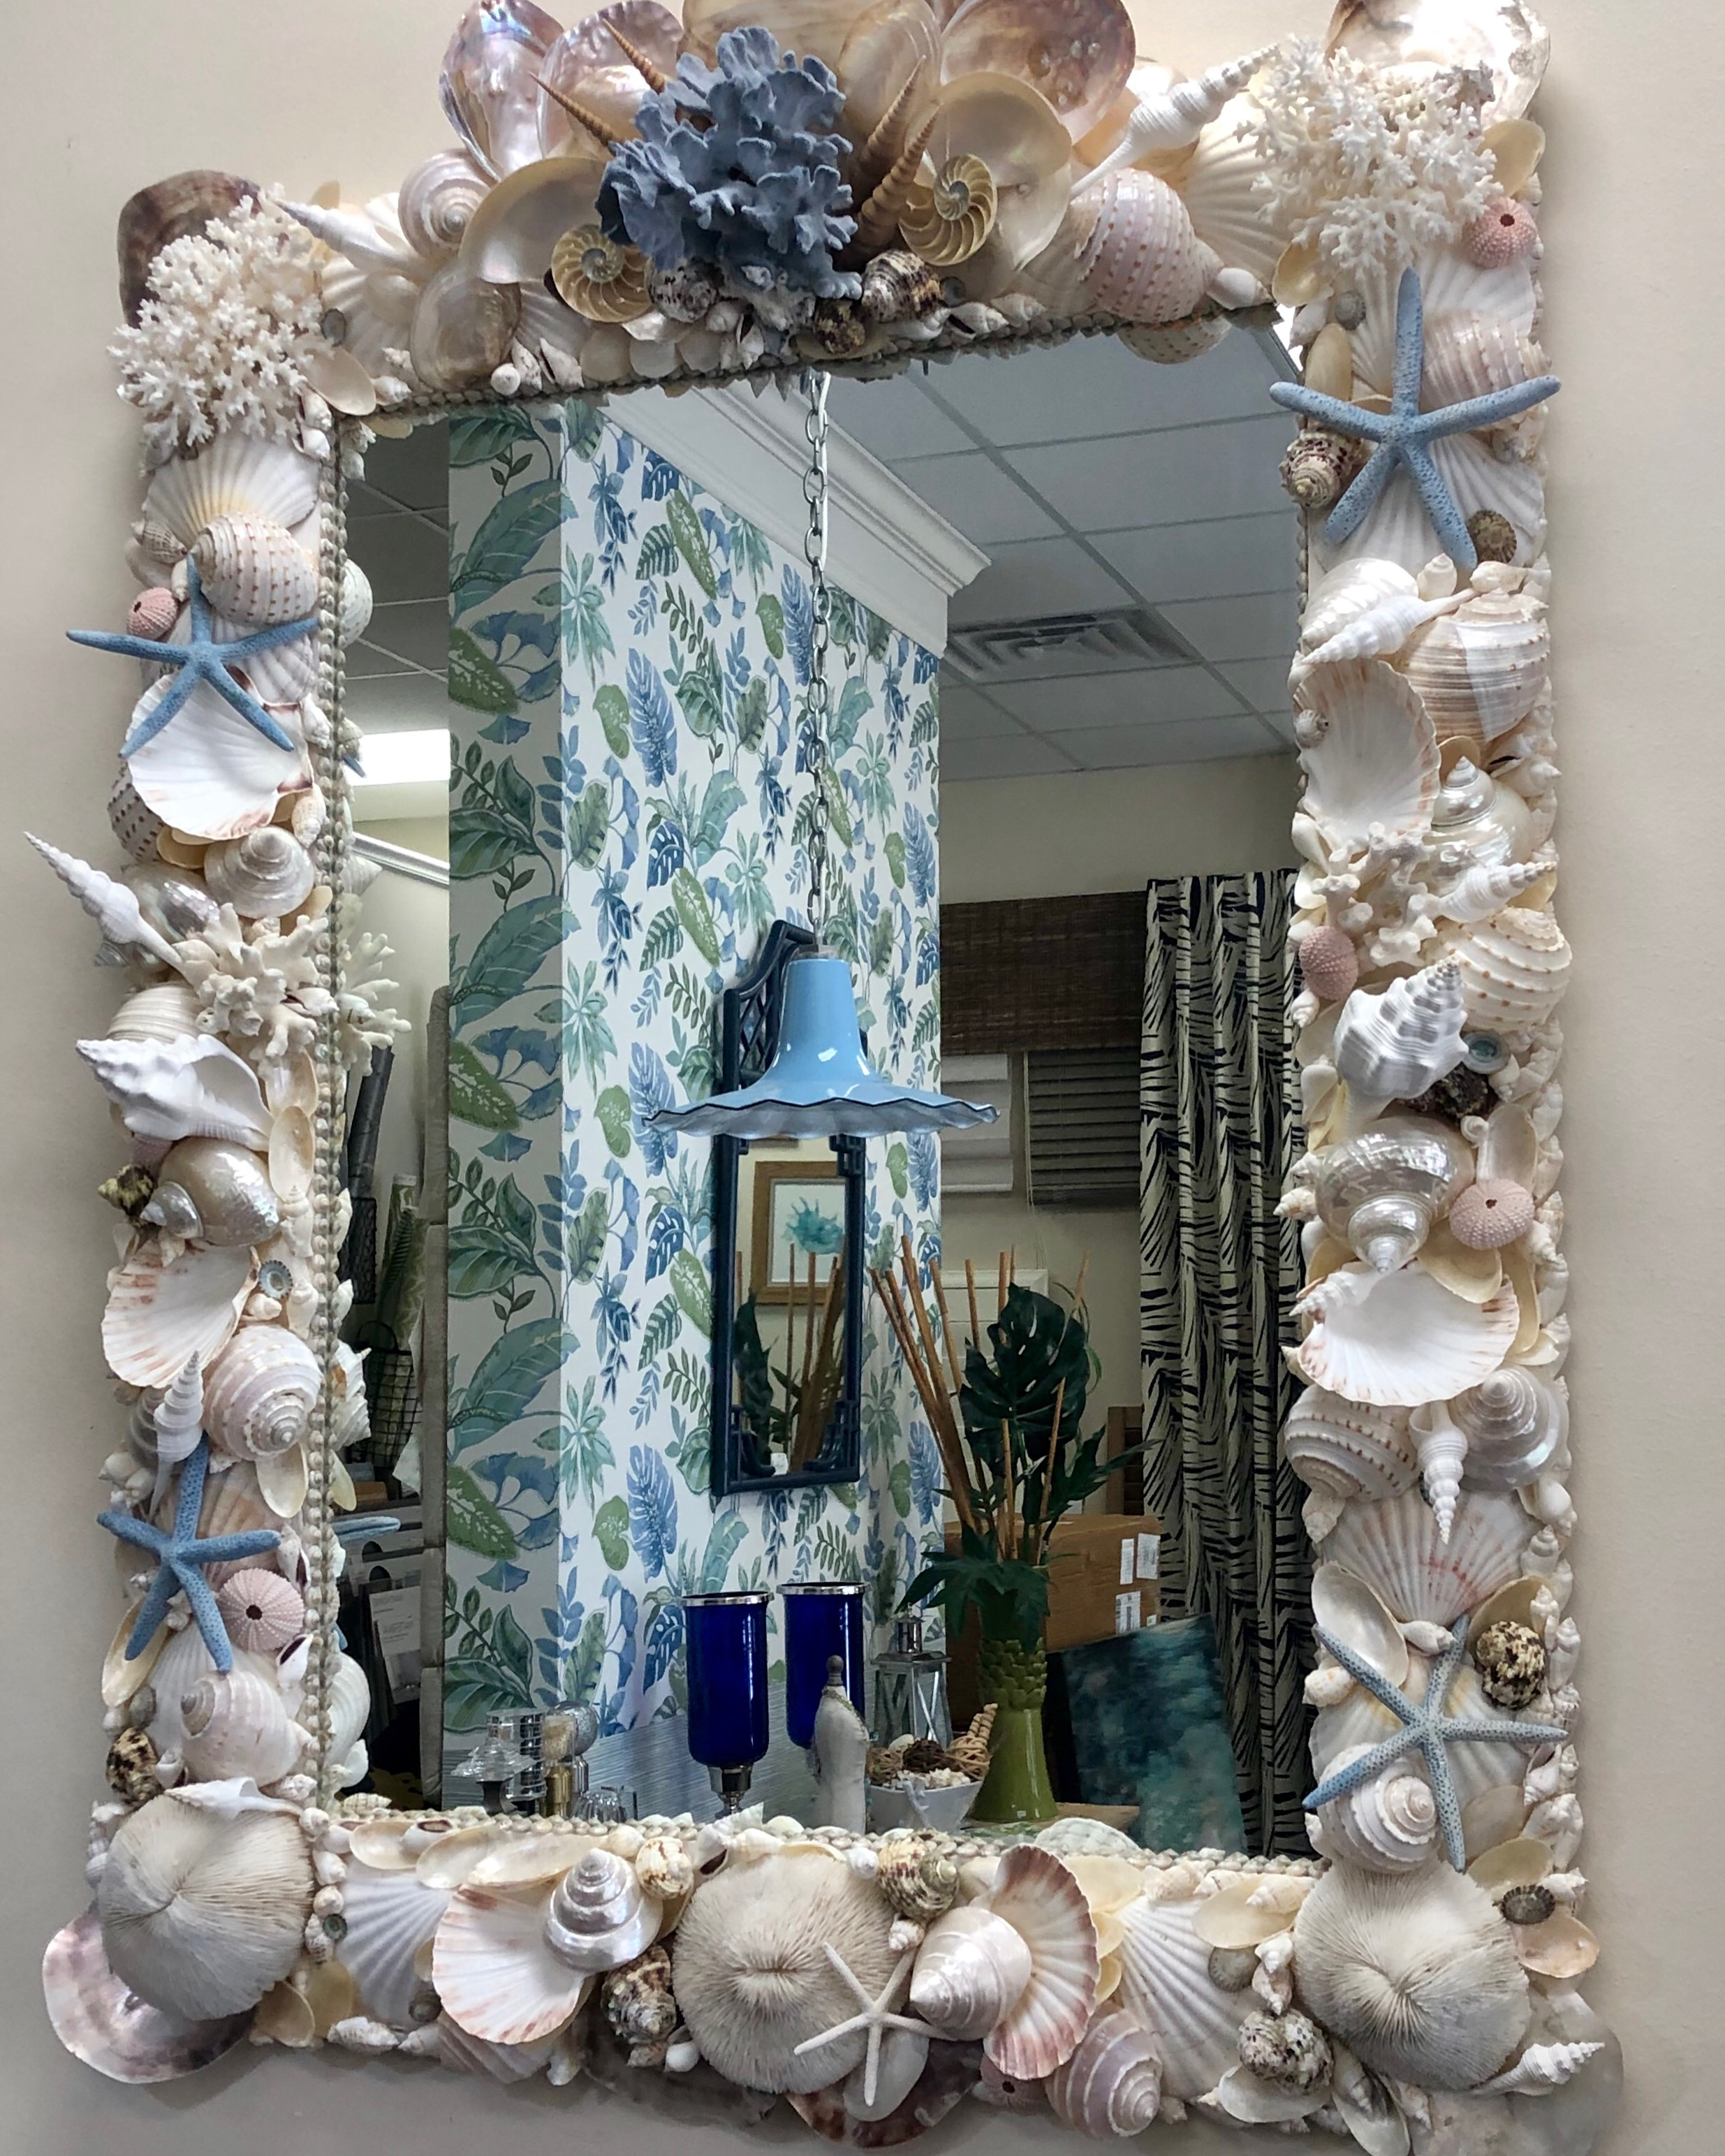 Large square mirror made with large white shells and blue coral. Reflection in the mirror shows blue floral wallpaper and blue lamp